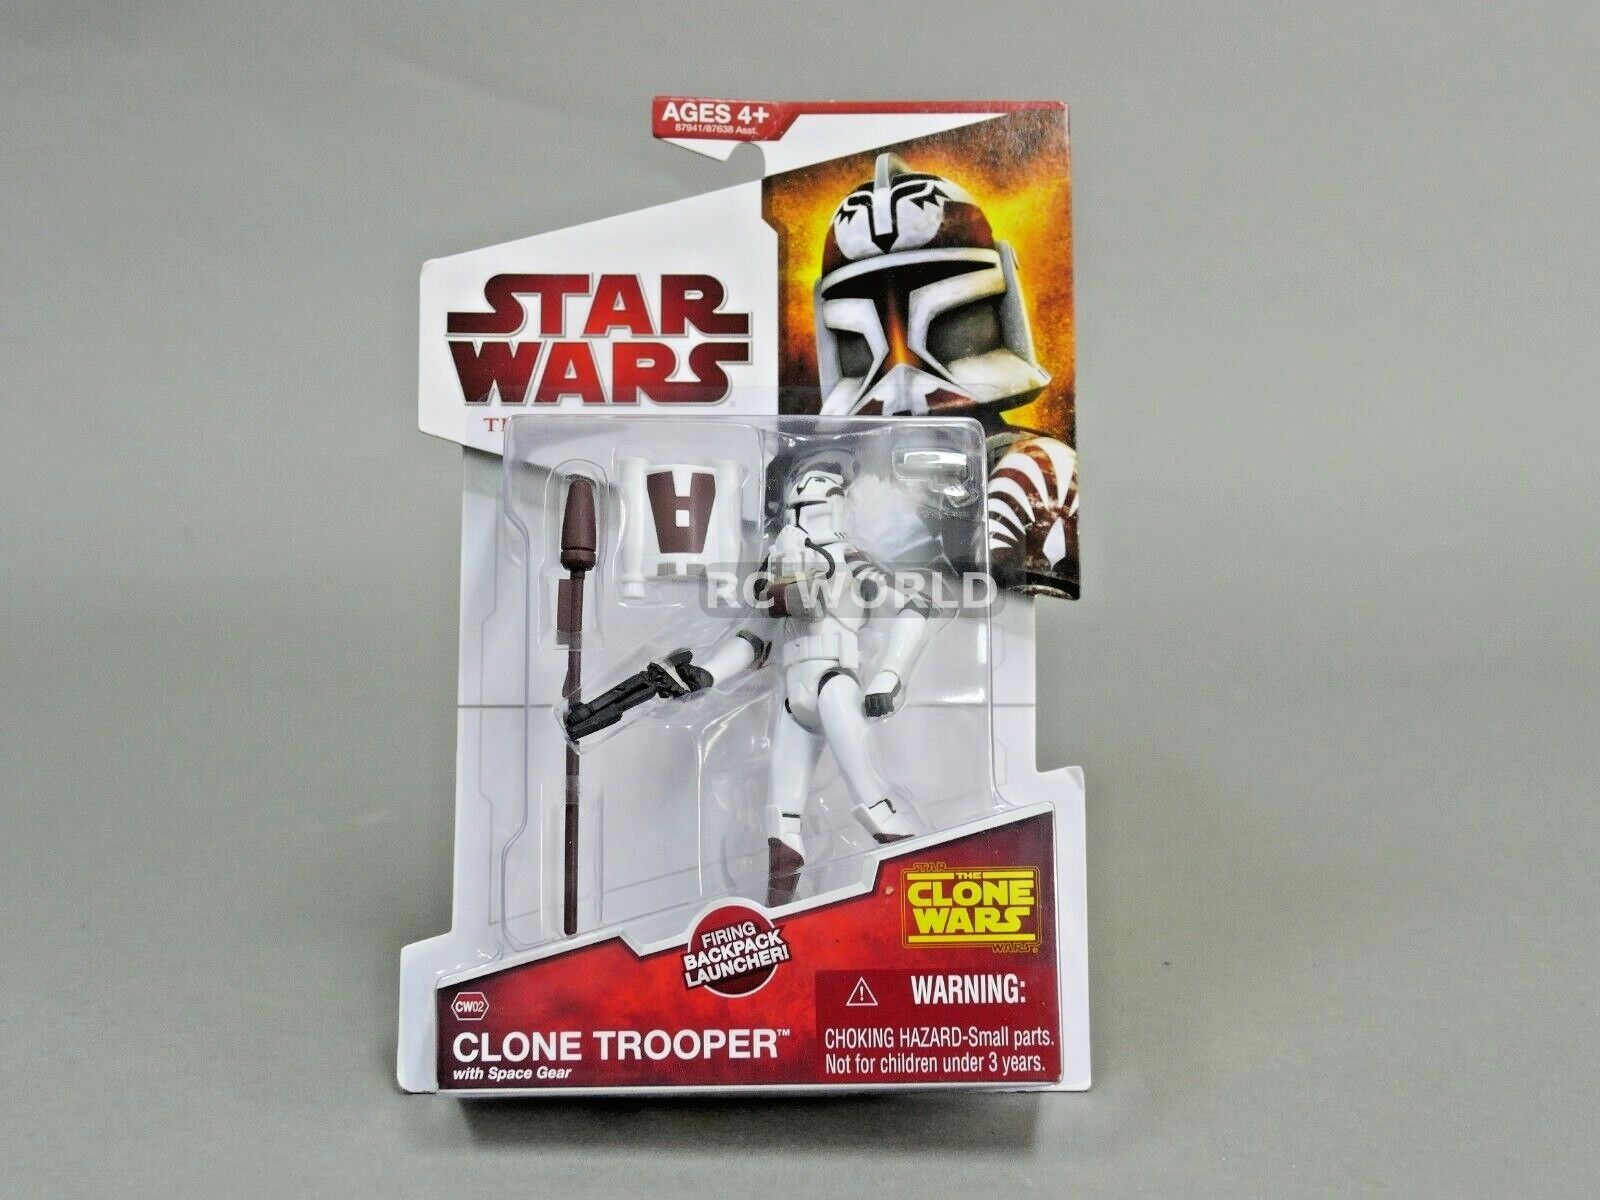 Star Wars The Clone Wars CLONE TROOPER W  Space Gear Action Figure  e3a